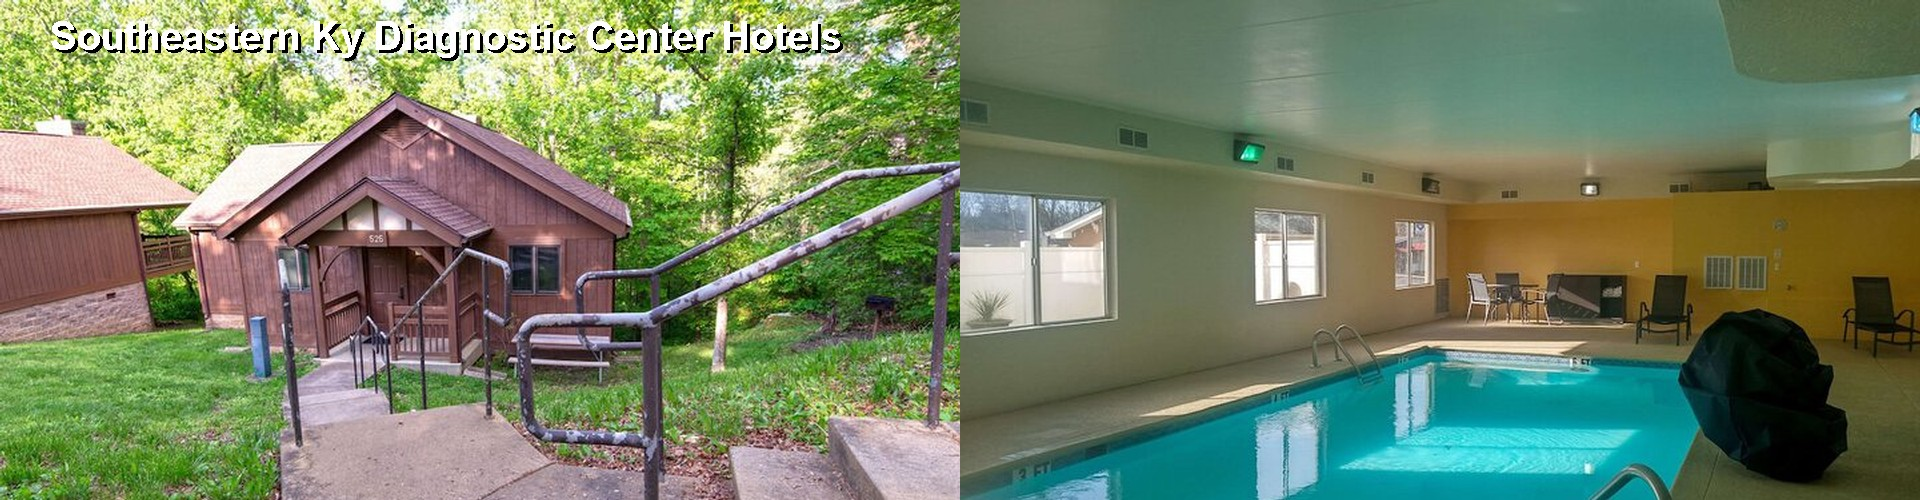 5 Best Hotels near Southeastern Ky Diagnostic Center